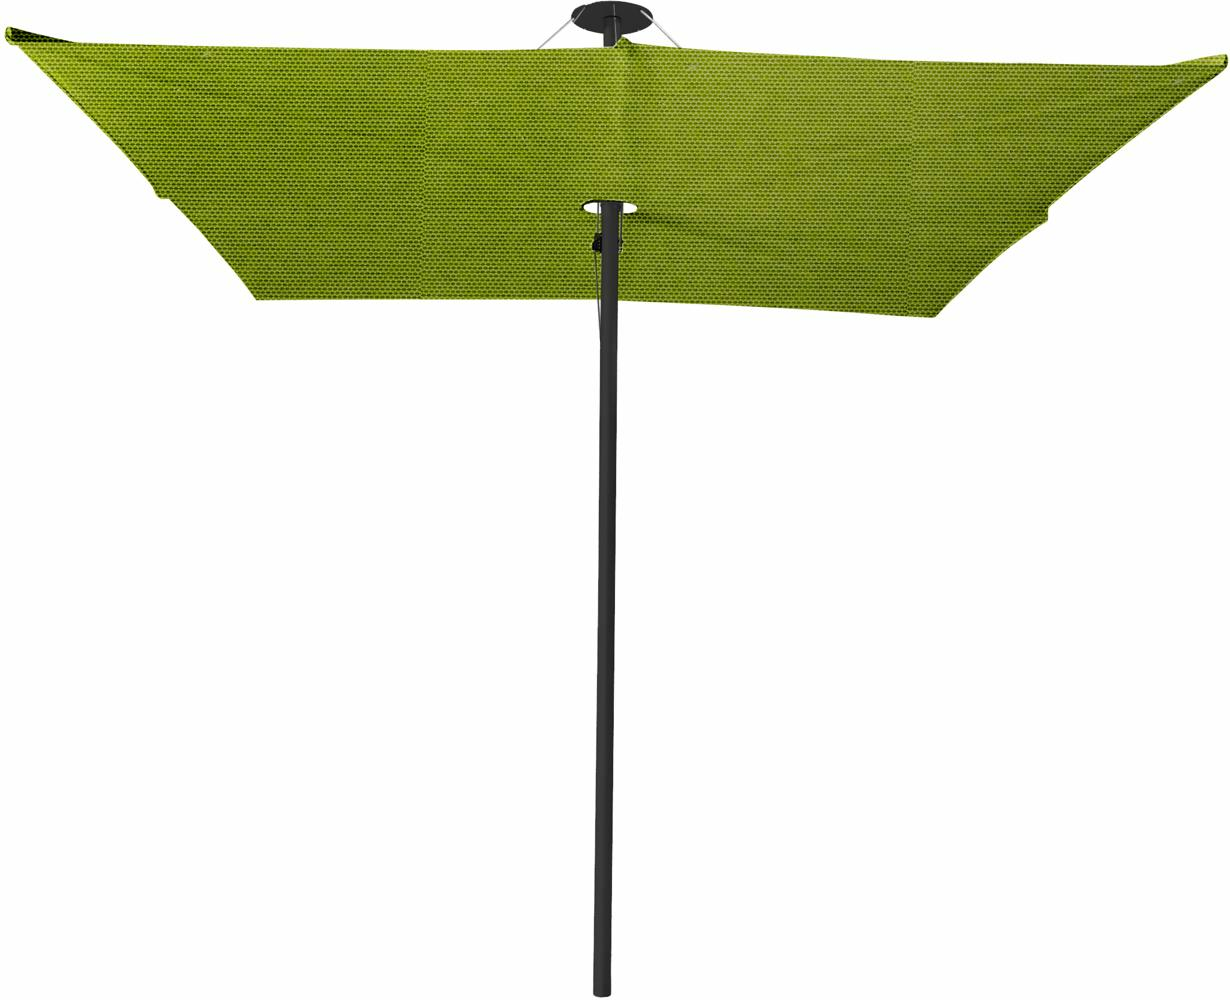 Infina center post umbrella, 3 m square, with frame in Dusk and Solidum Lichen canopy.